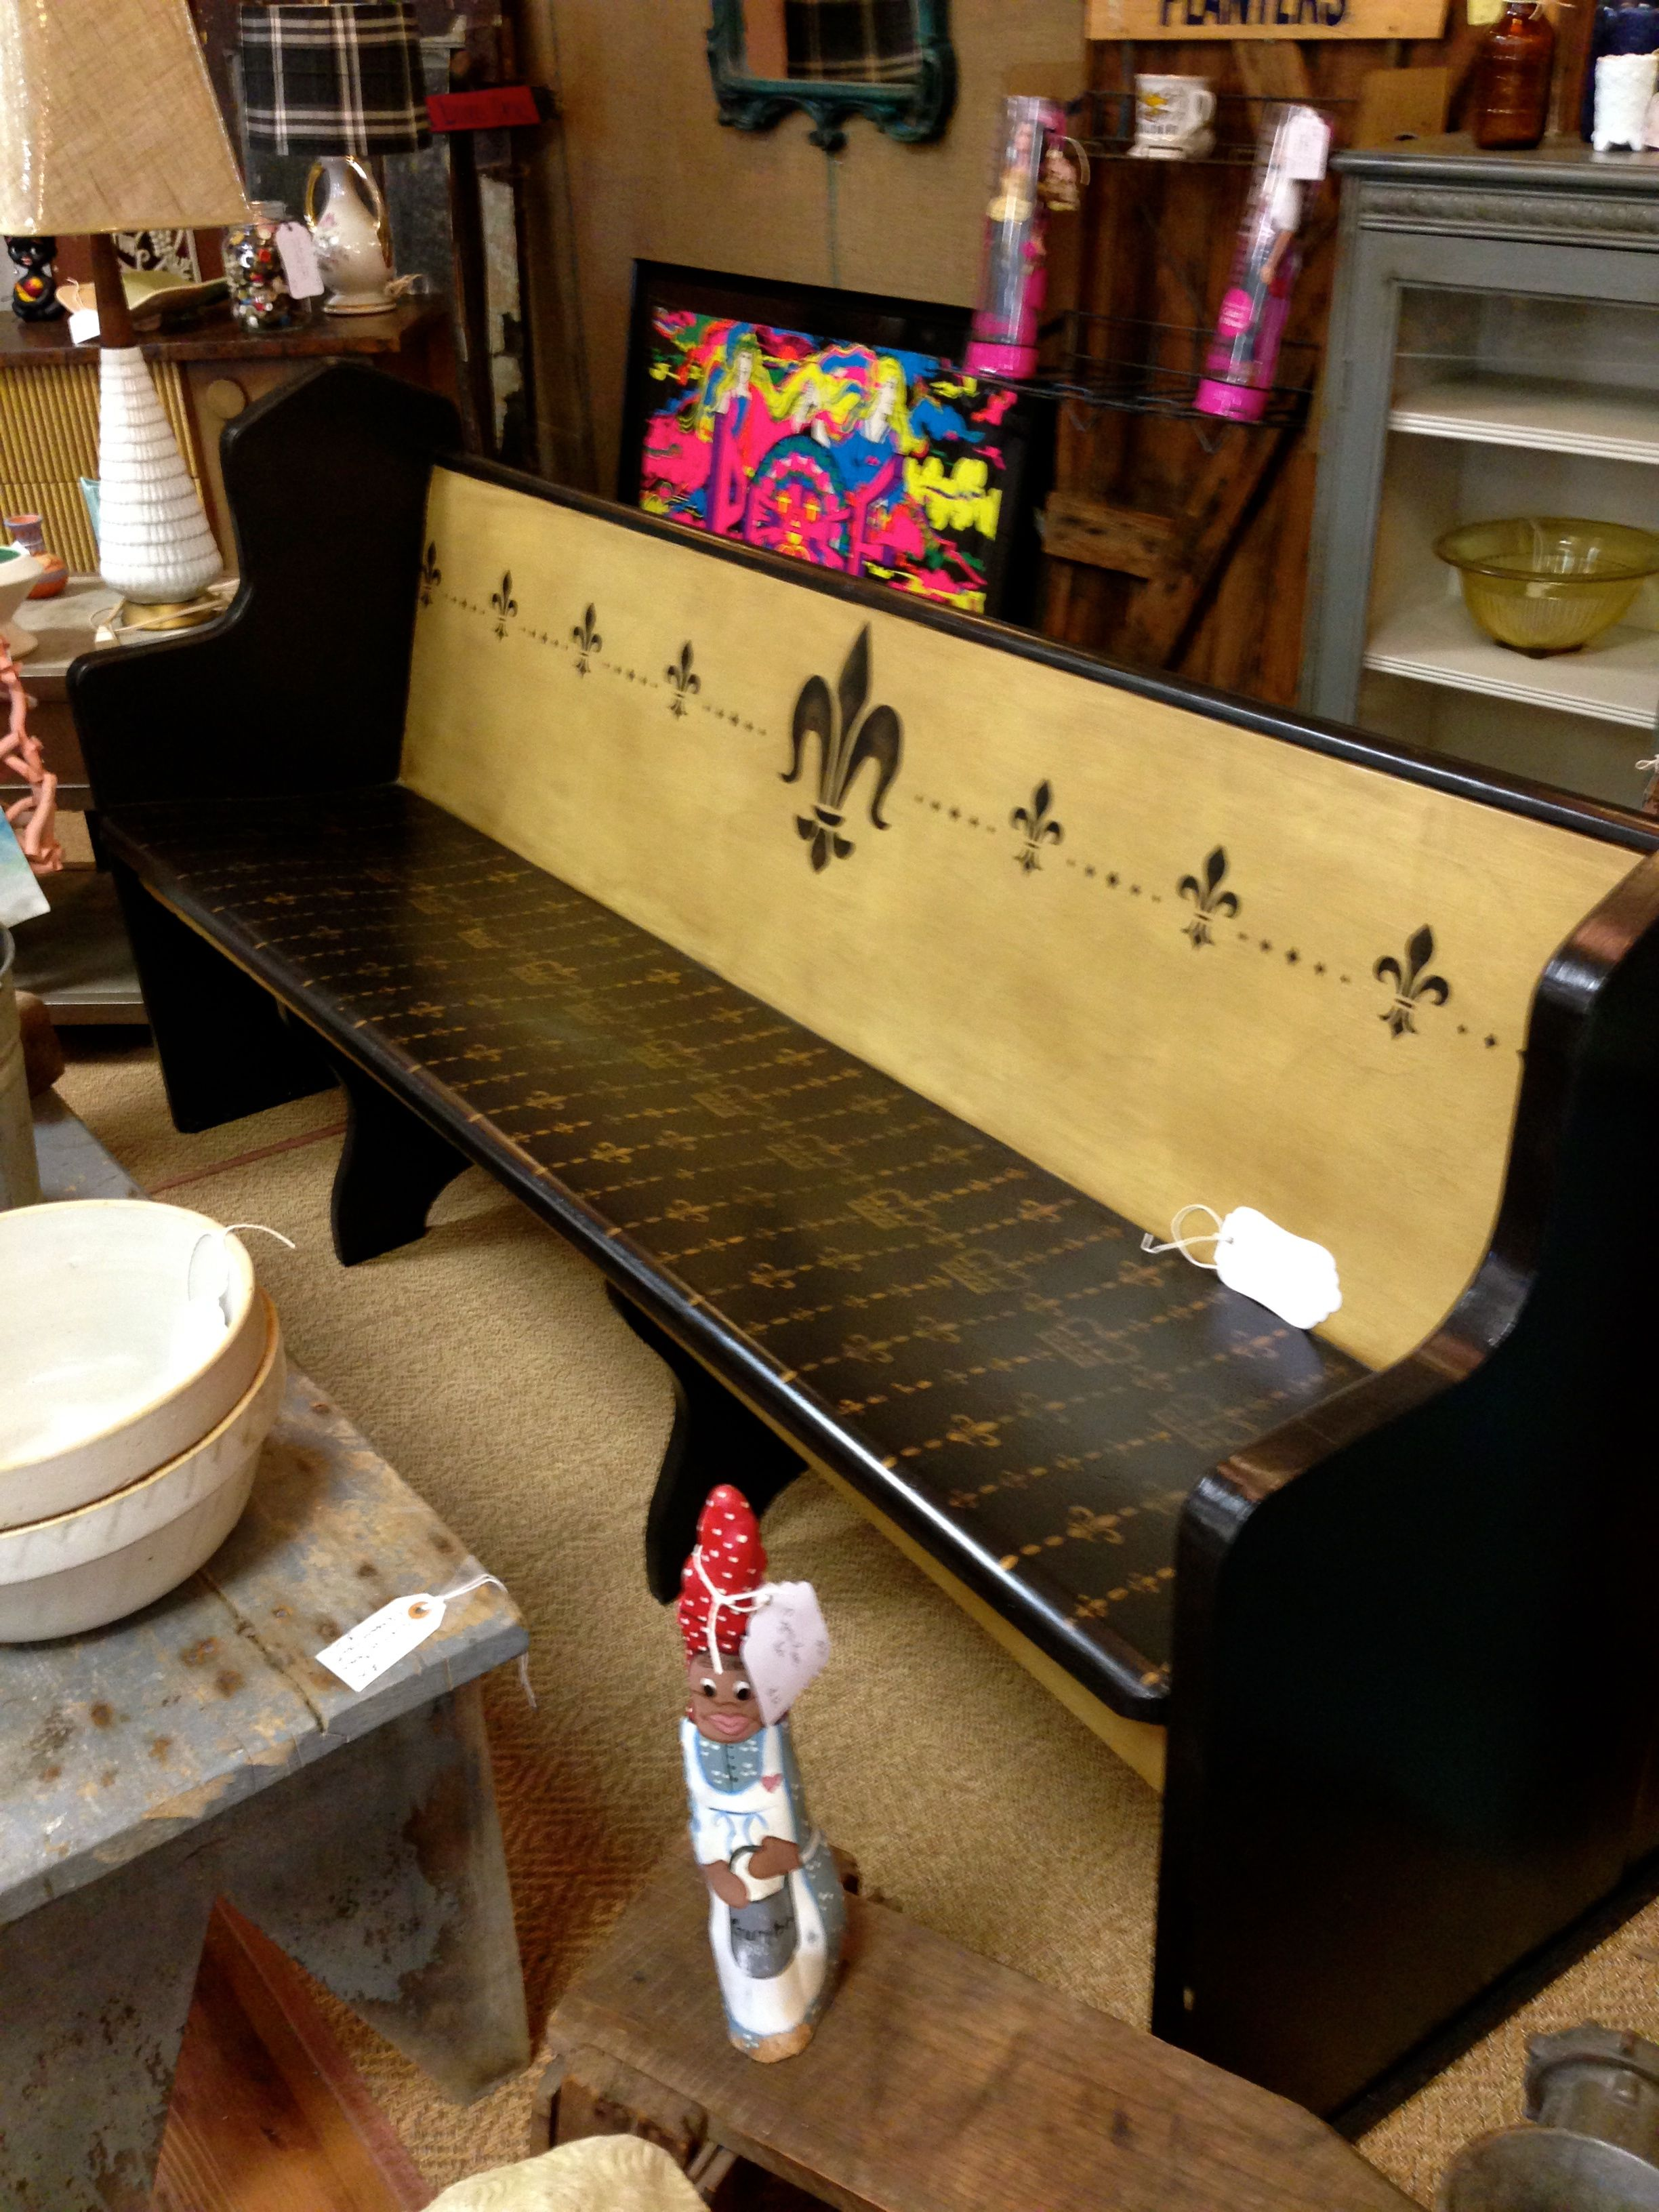 This Is A Vintage Church Pew That Was Painted With CeCe Caldwellu0027s Paints.  I Love The Nod To Our New Orleans Saints Football Team! See More Pics On  Facebook ...